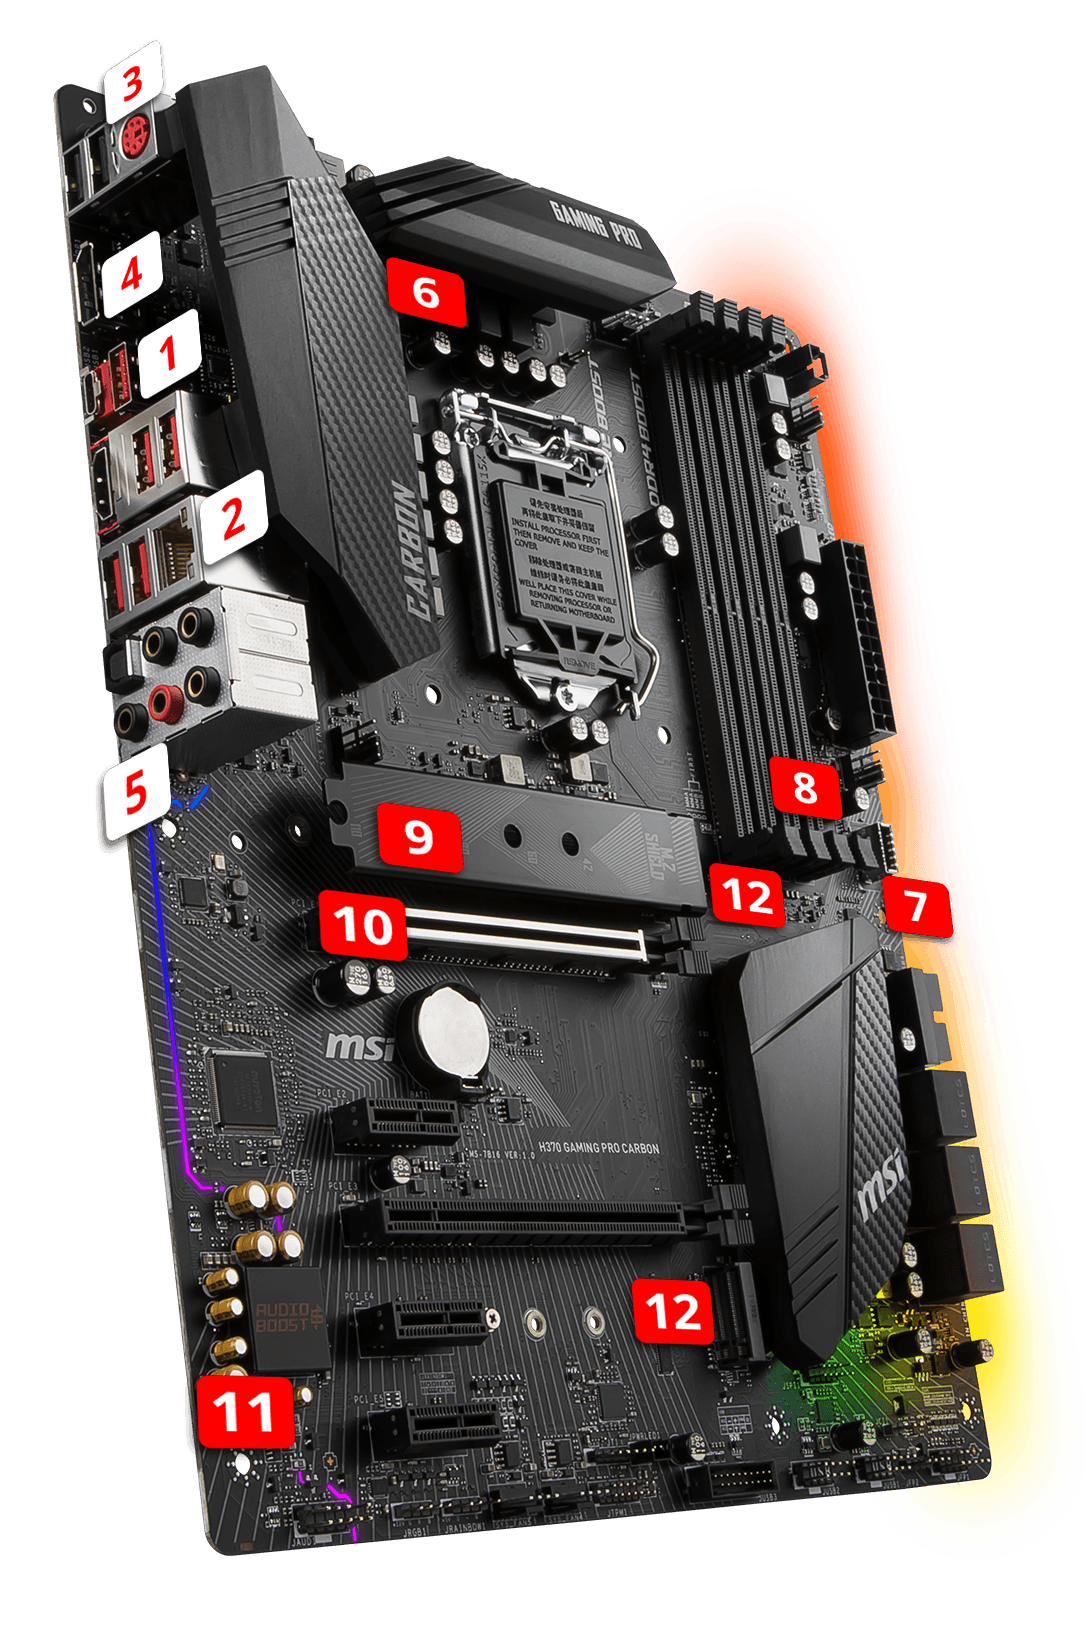 MSI H370 GAMING PRO CARBON overview